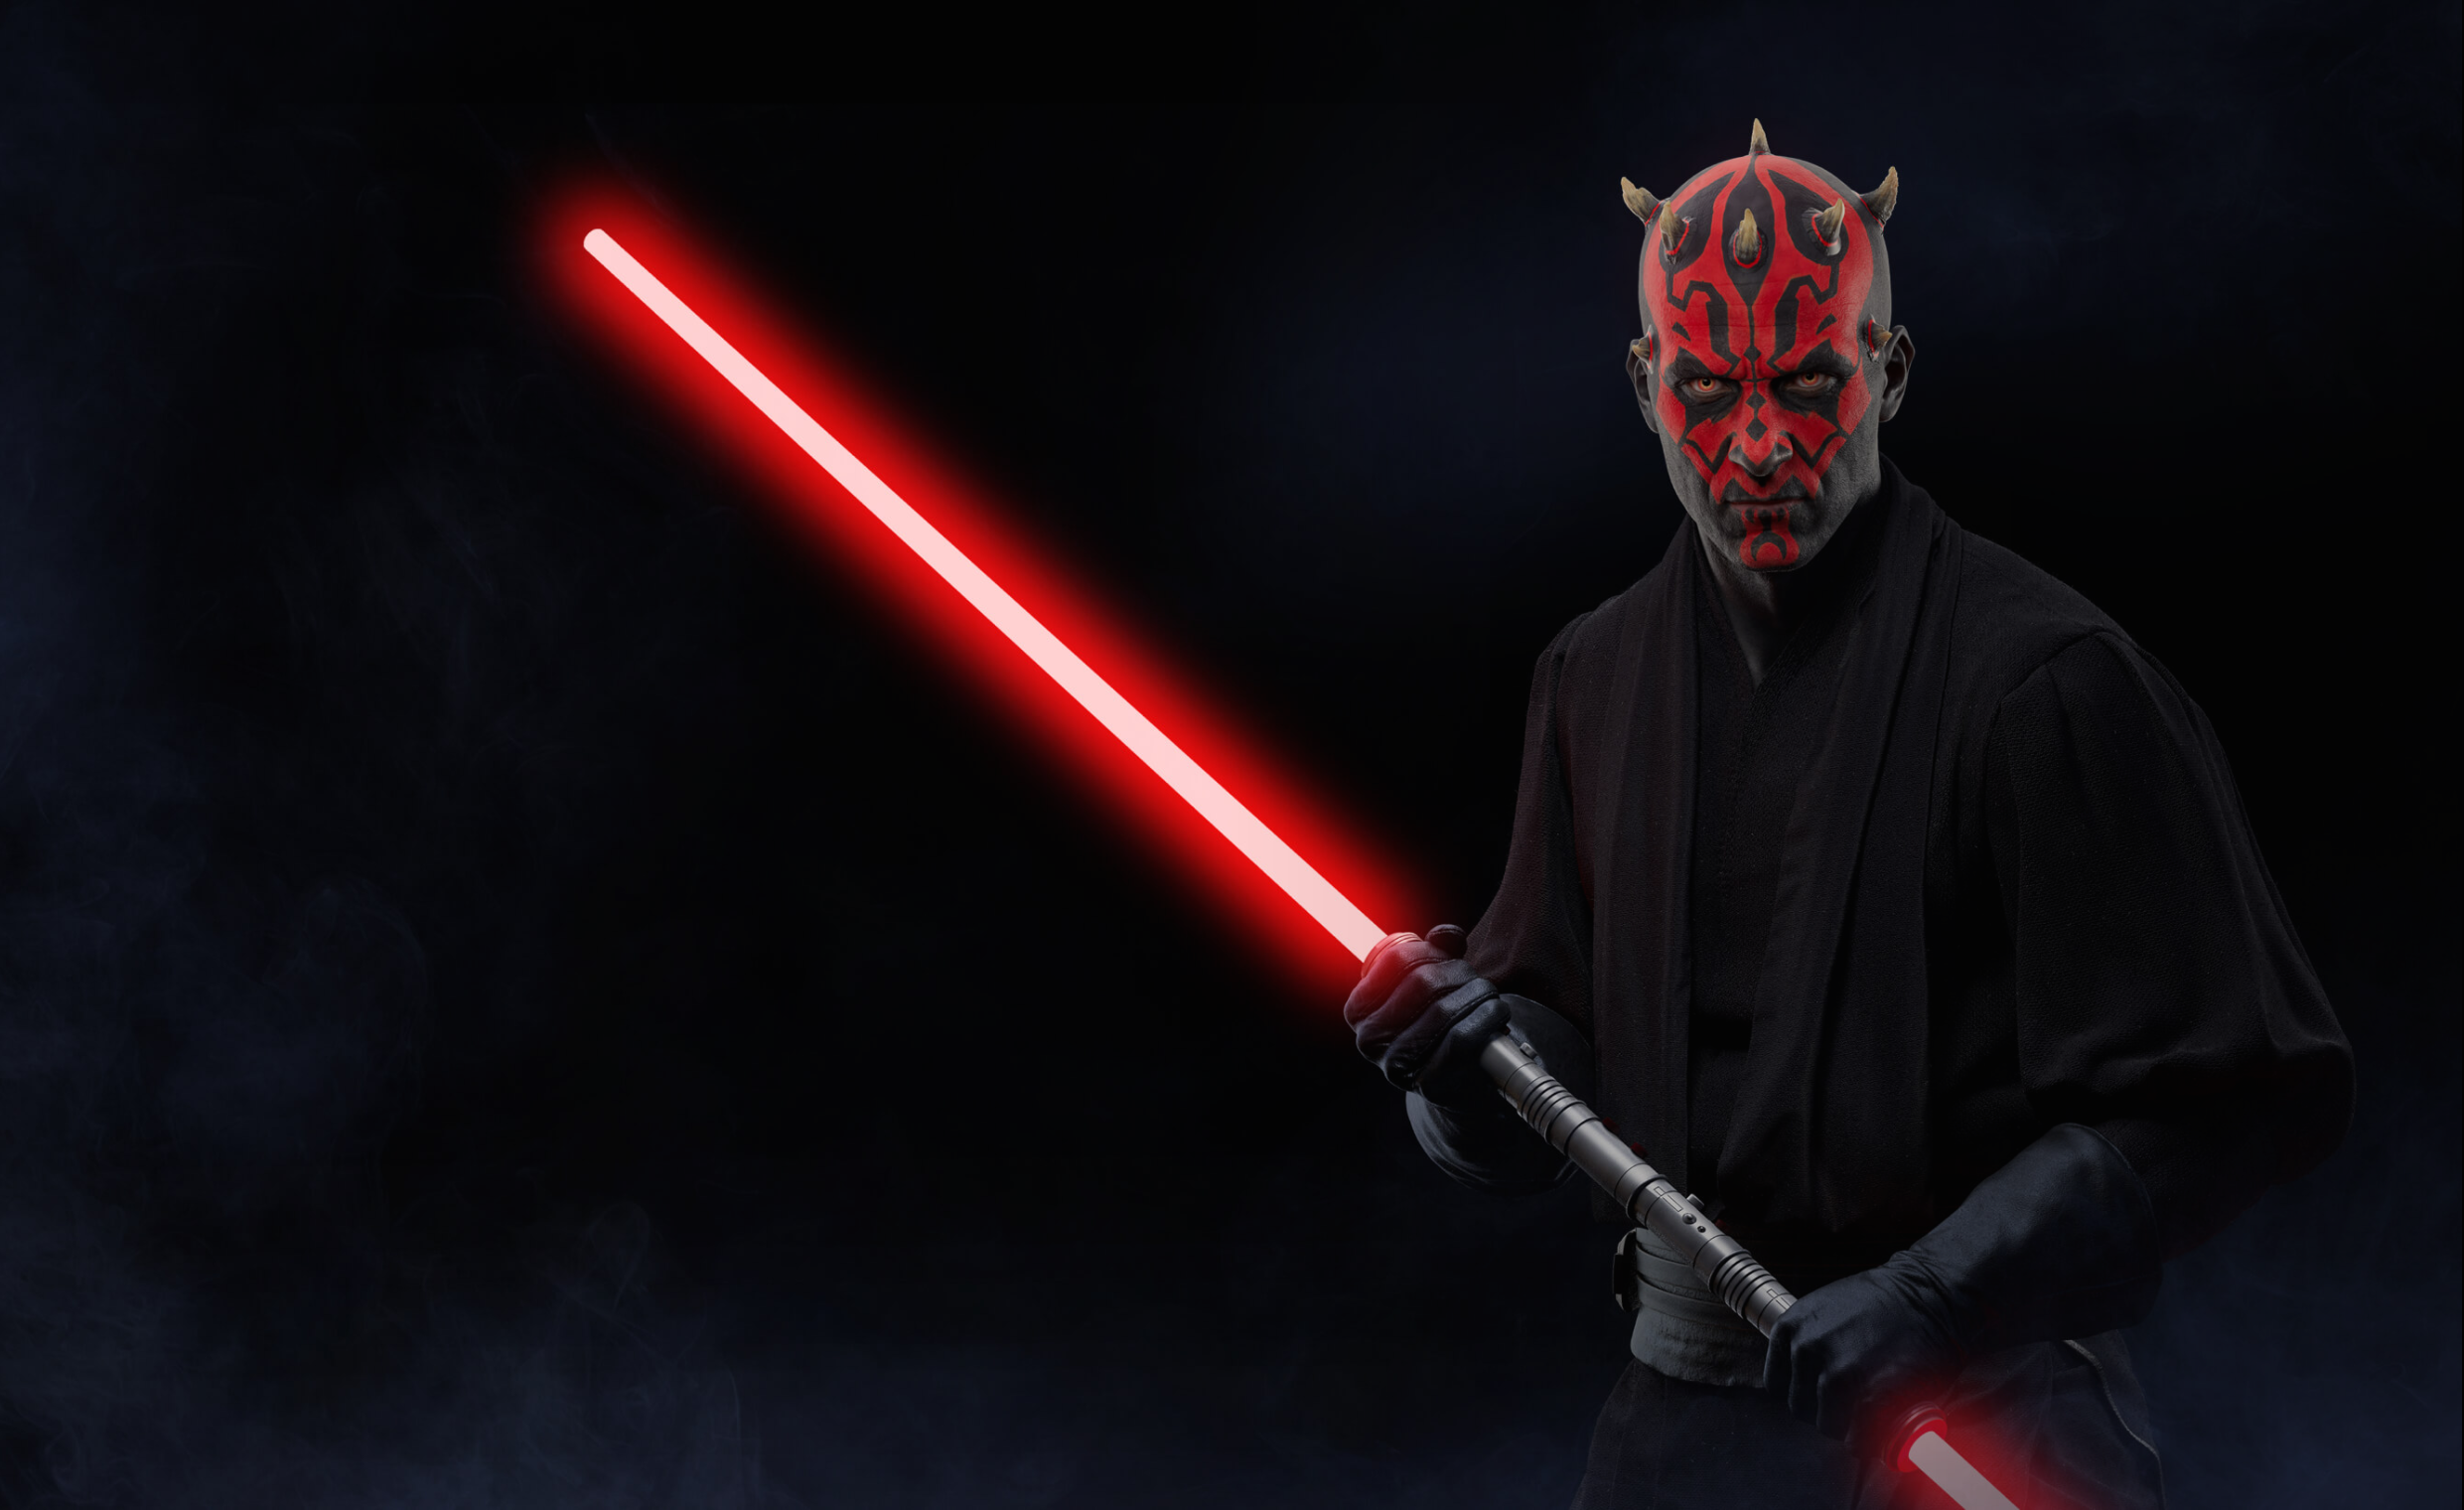 watch the full length story trailer for star wars